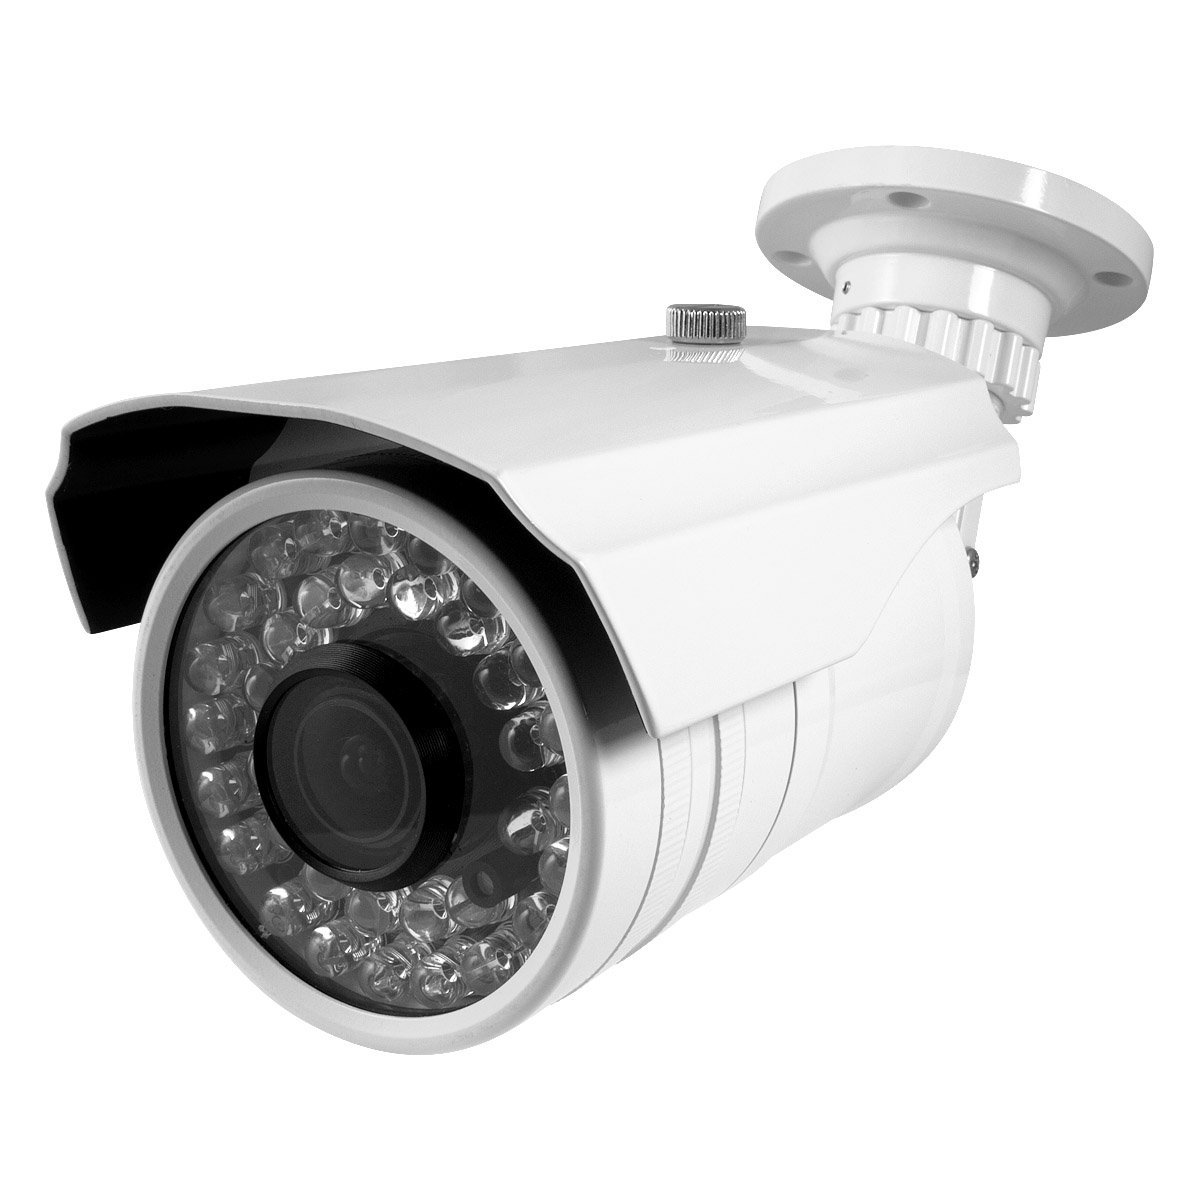 Best Vision Systems HD Video Security